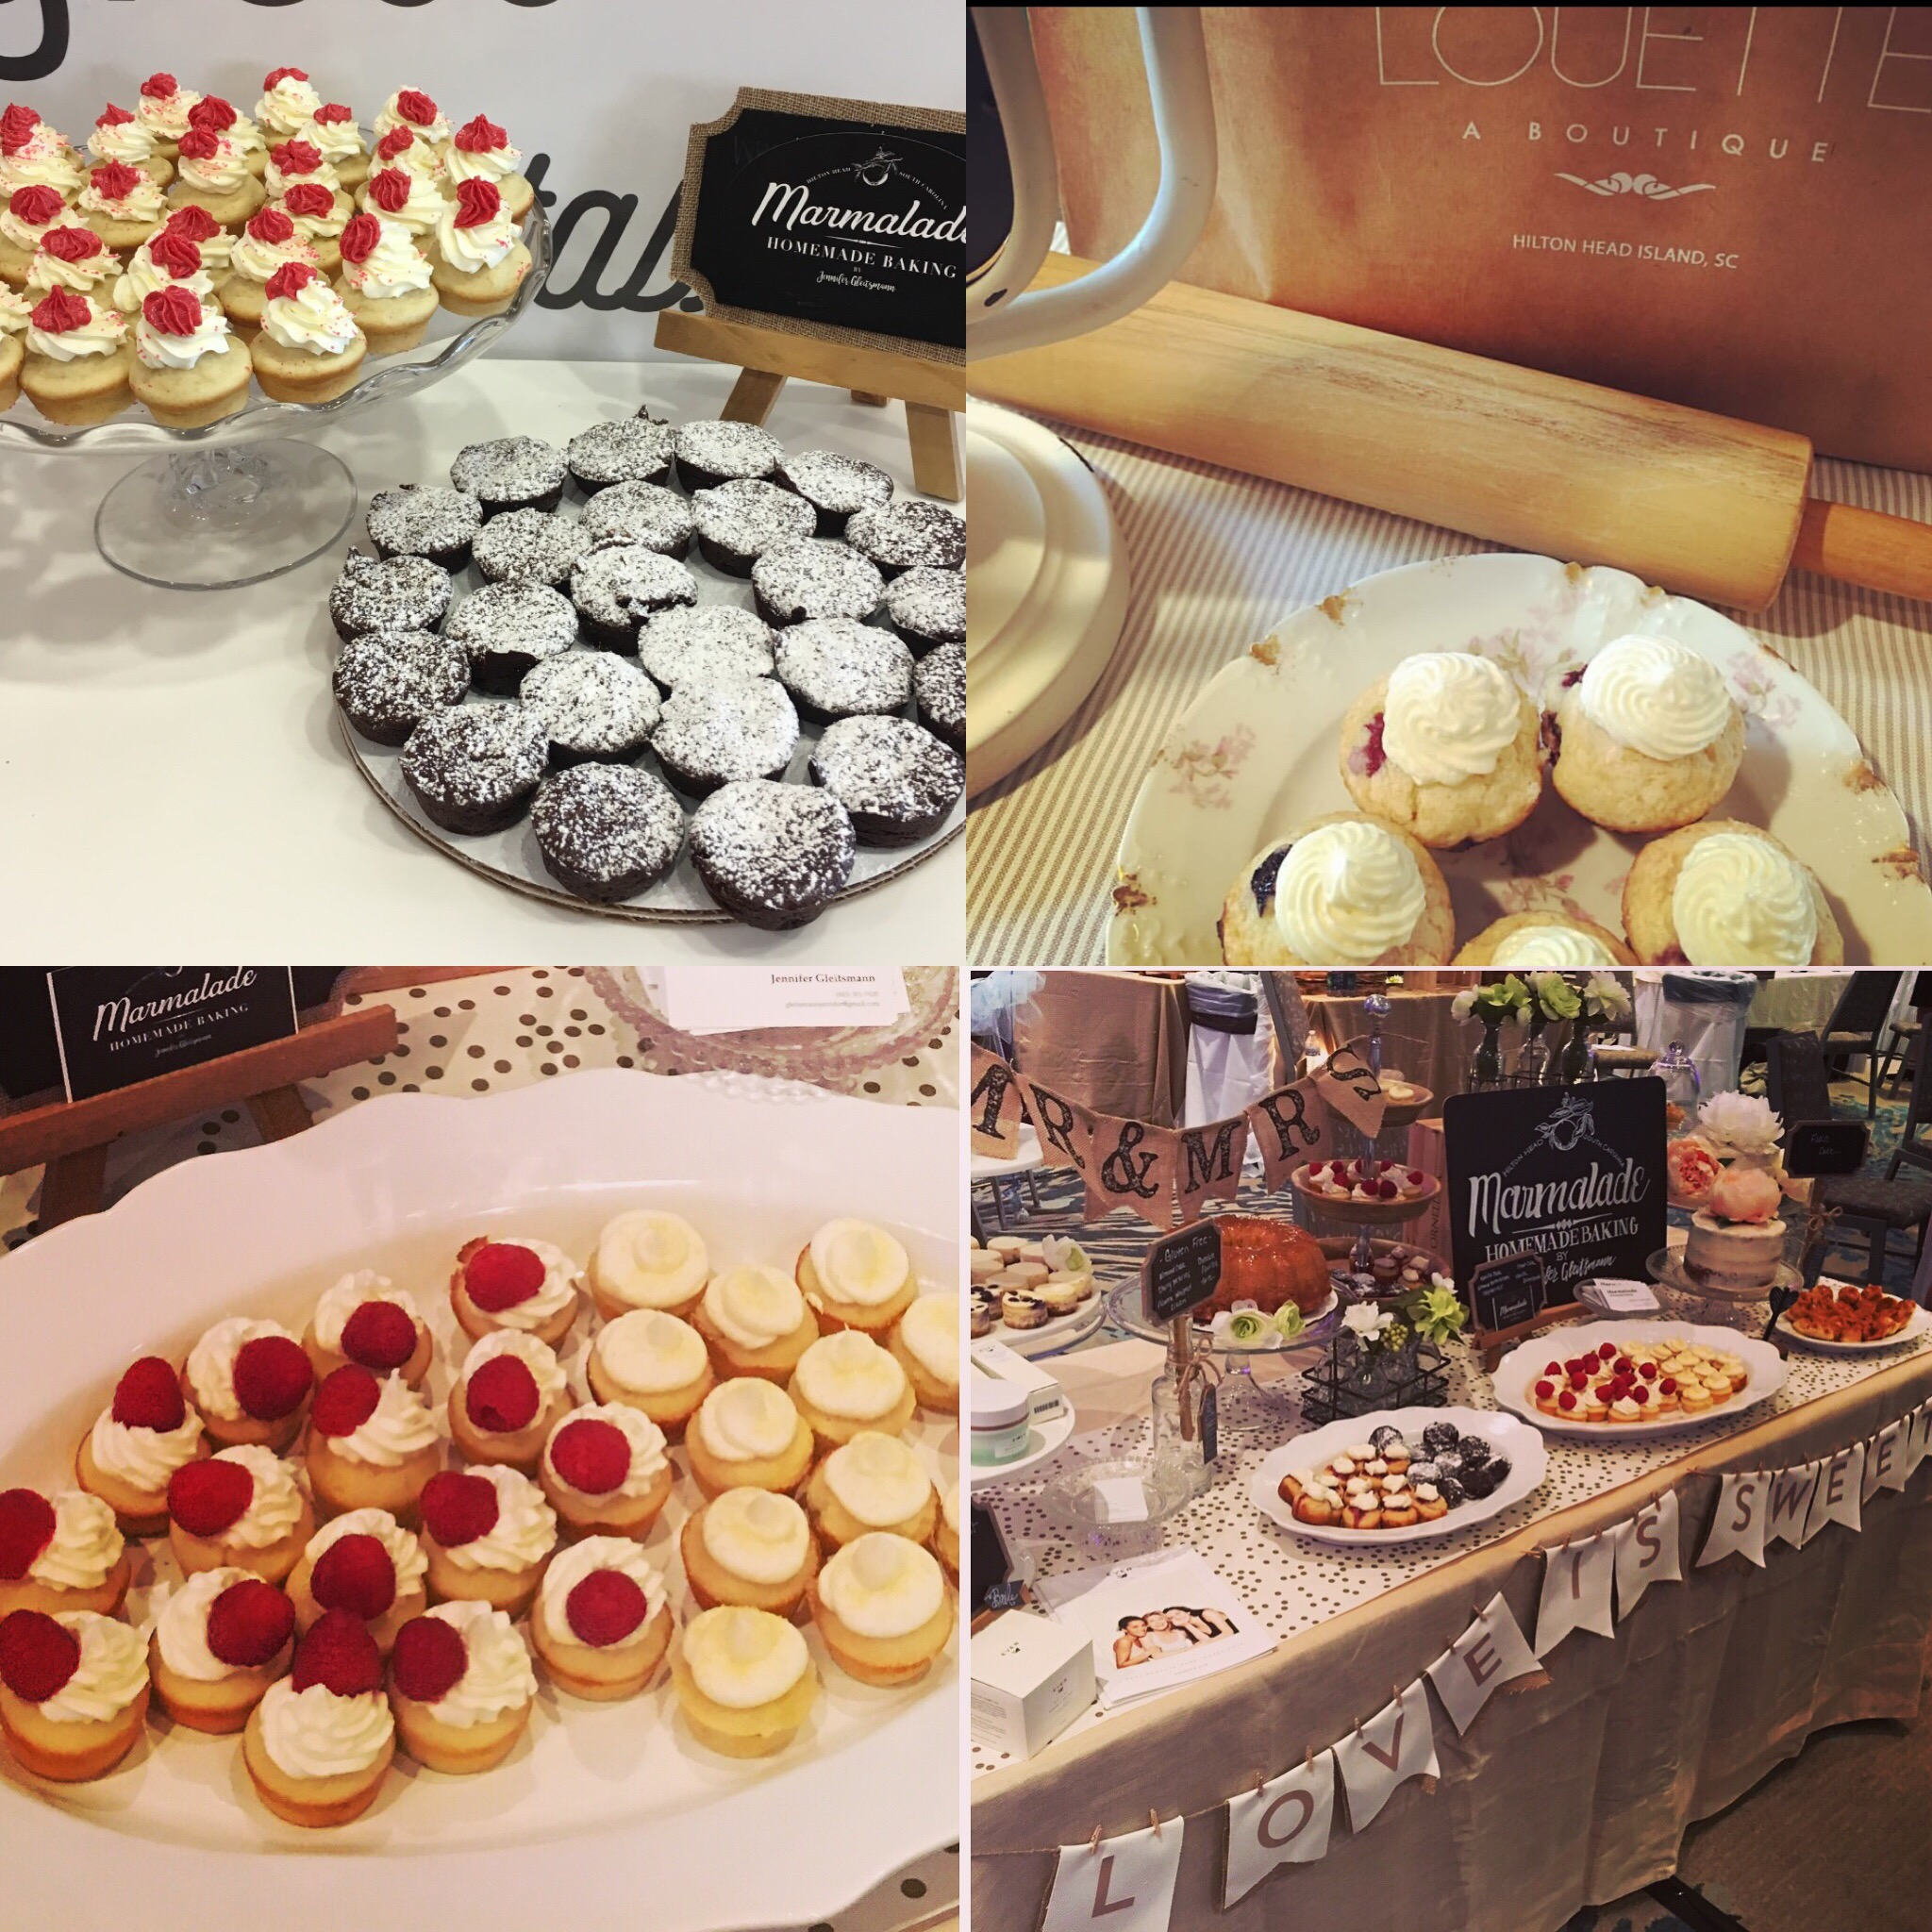 MINI DESSERTS ARE PERFECT FOR WEDDINGS OR PROMOTIONAL EVENTS